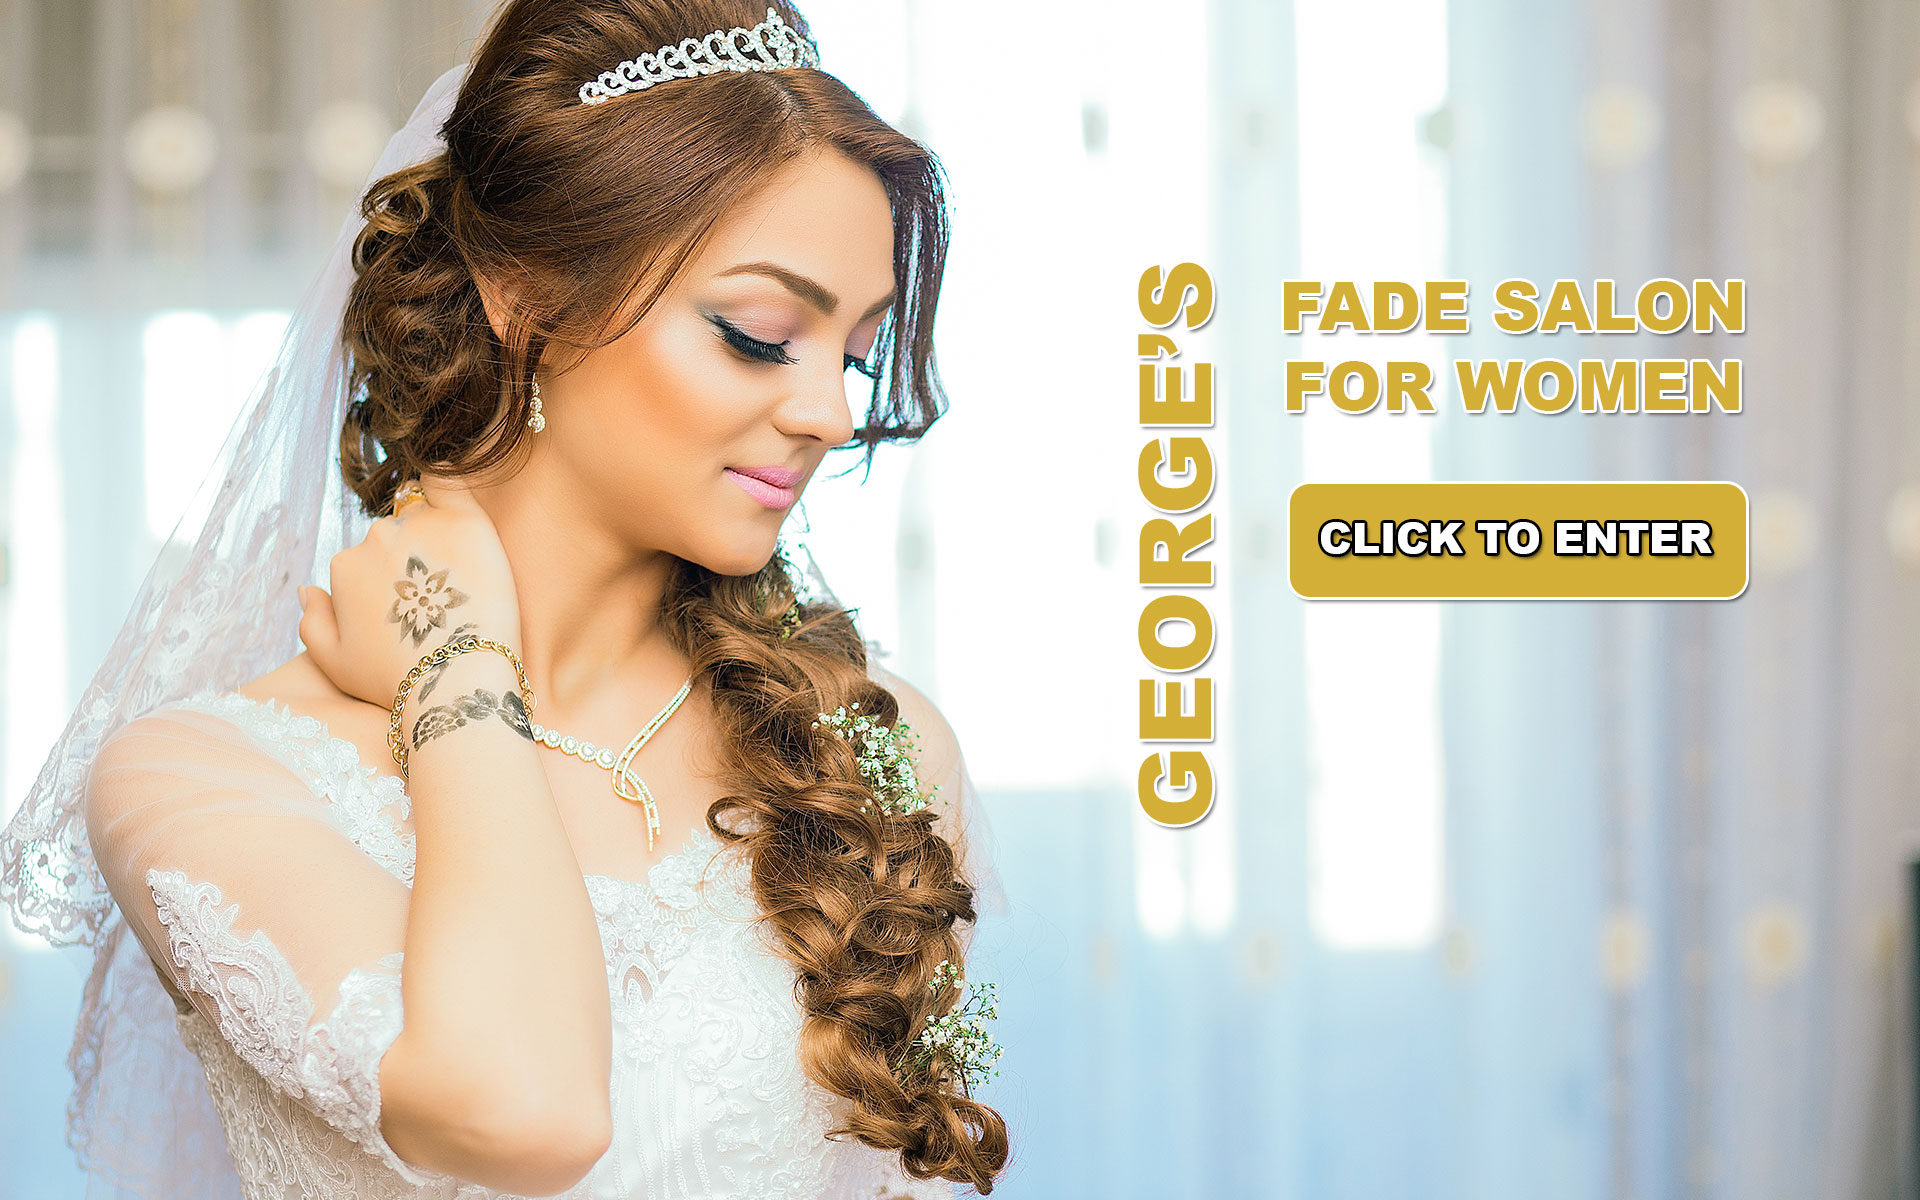 Georges Fade salon For women